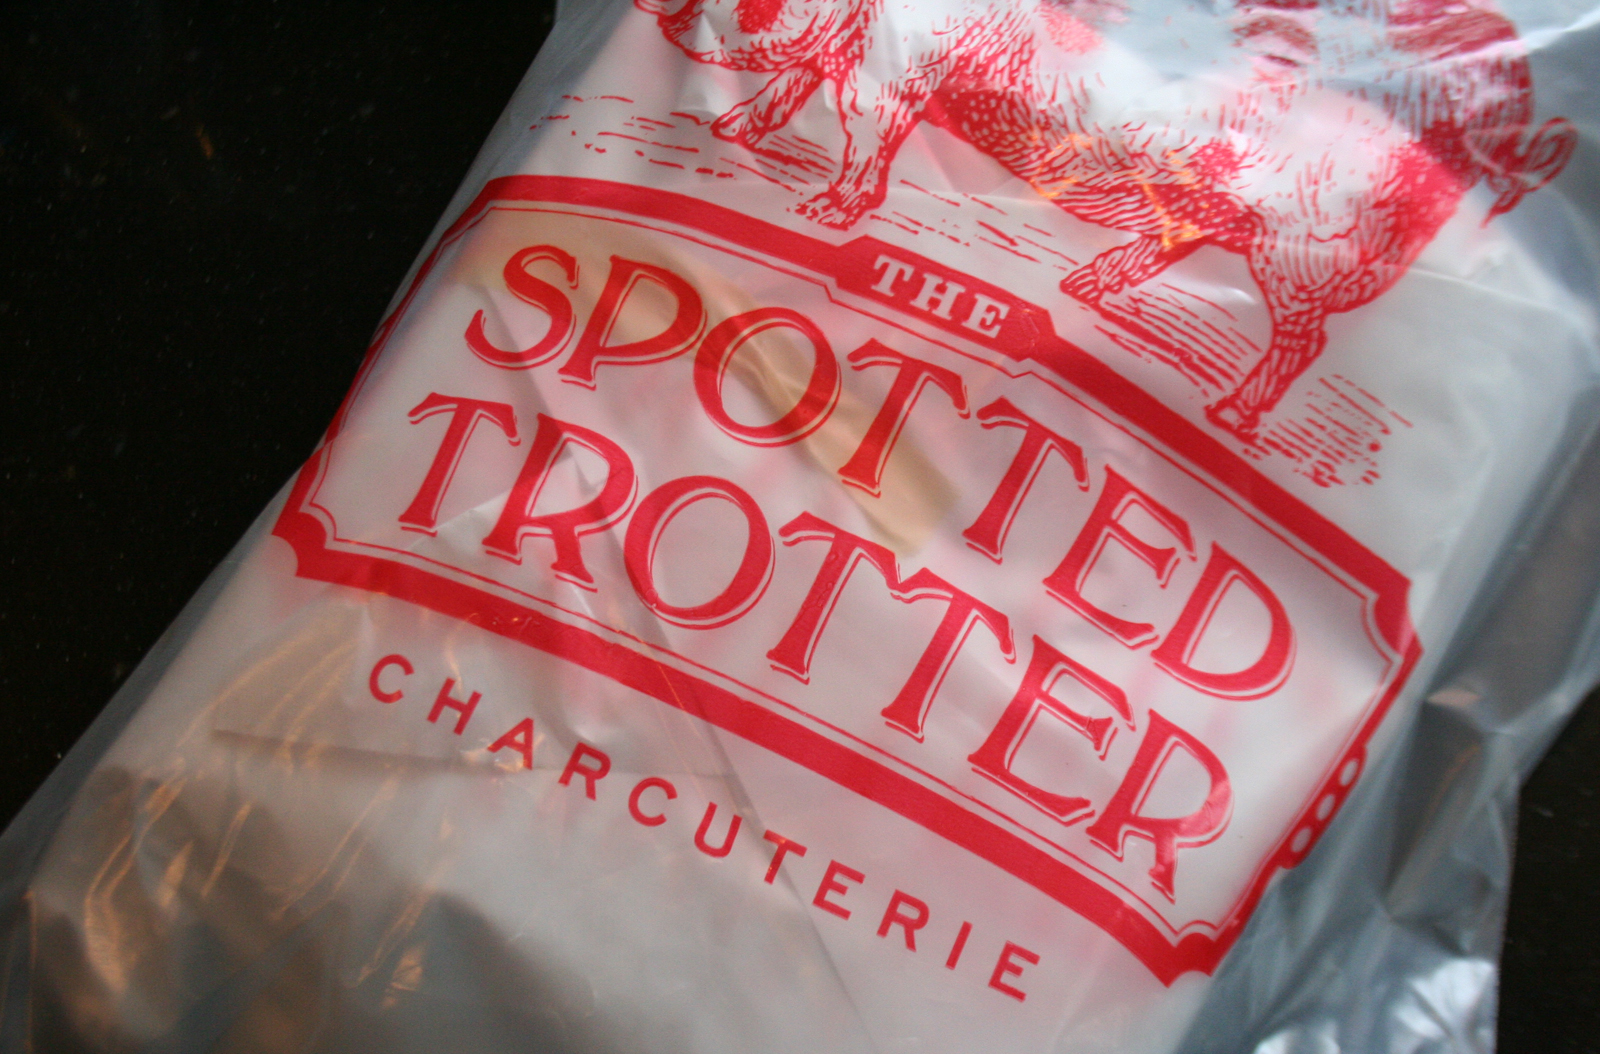 Pork fat from the Spotted Trotter charcuterie